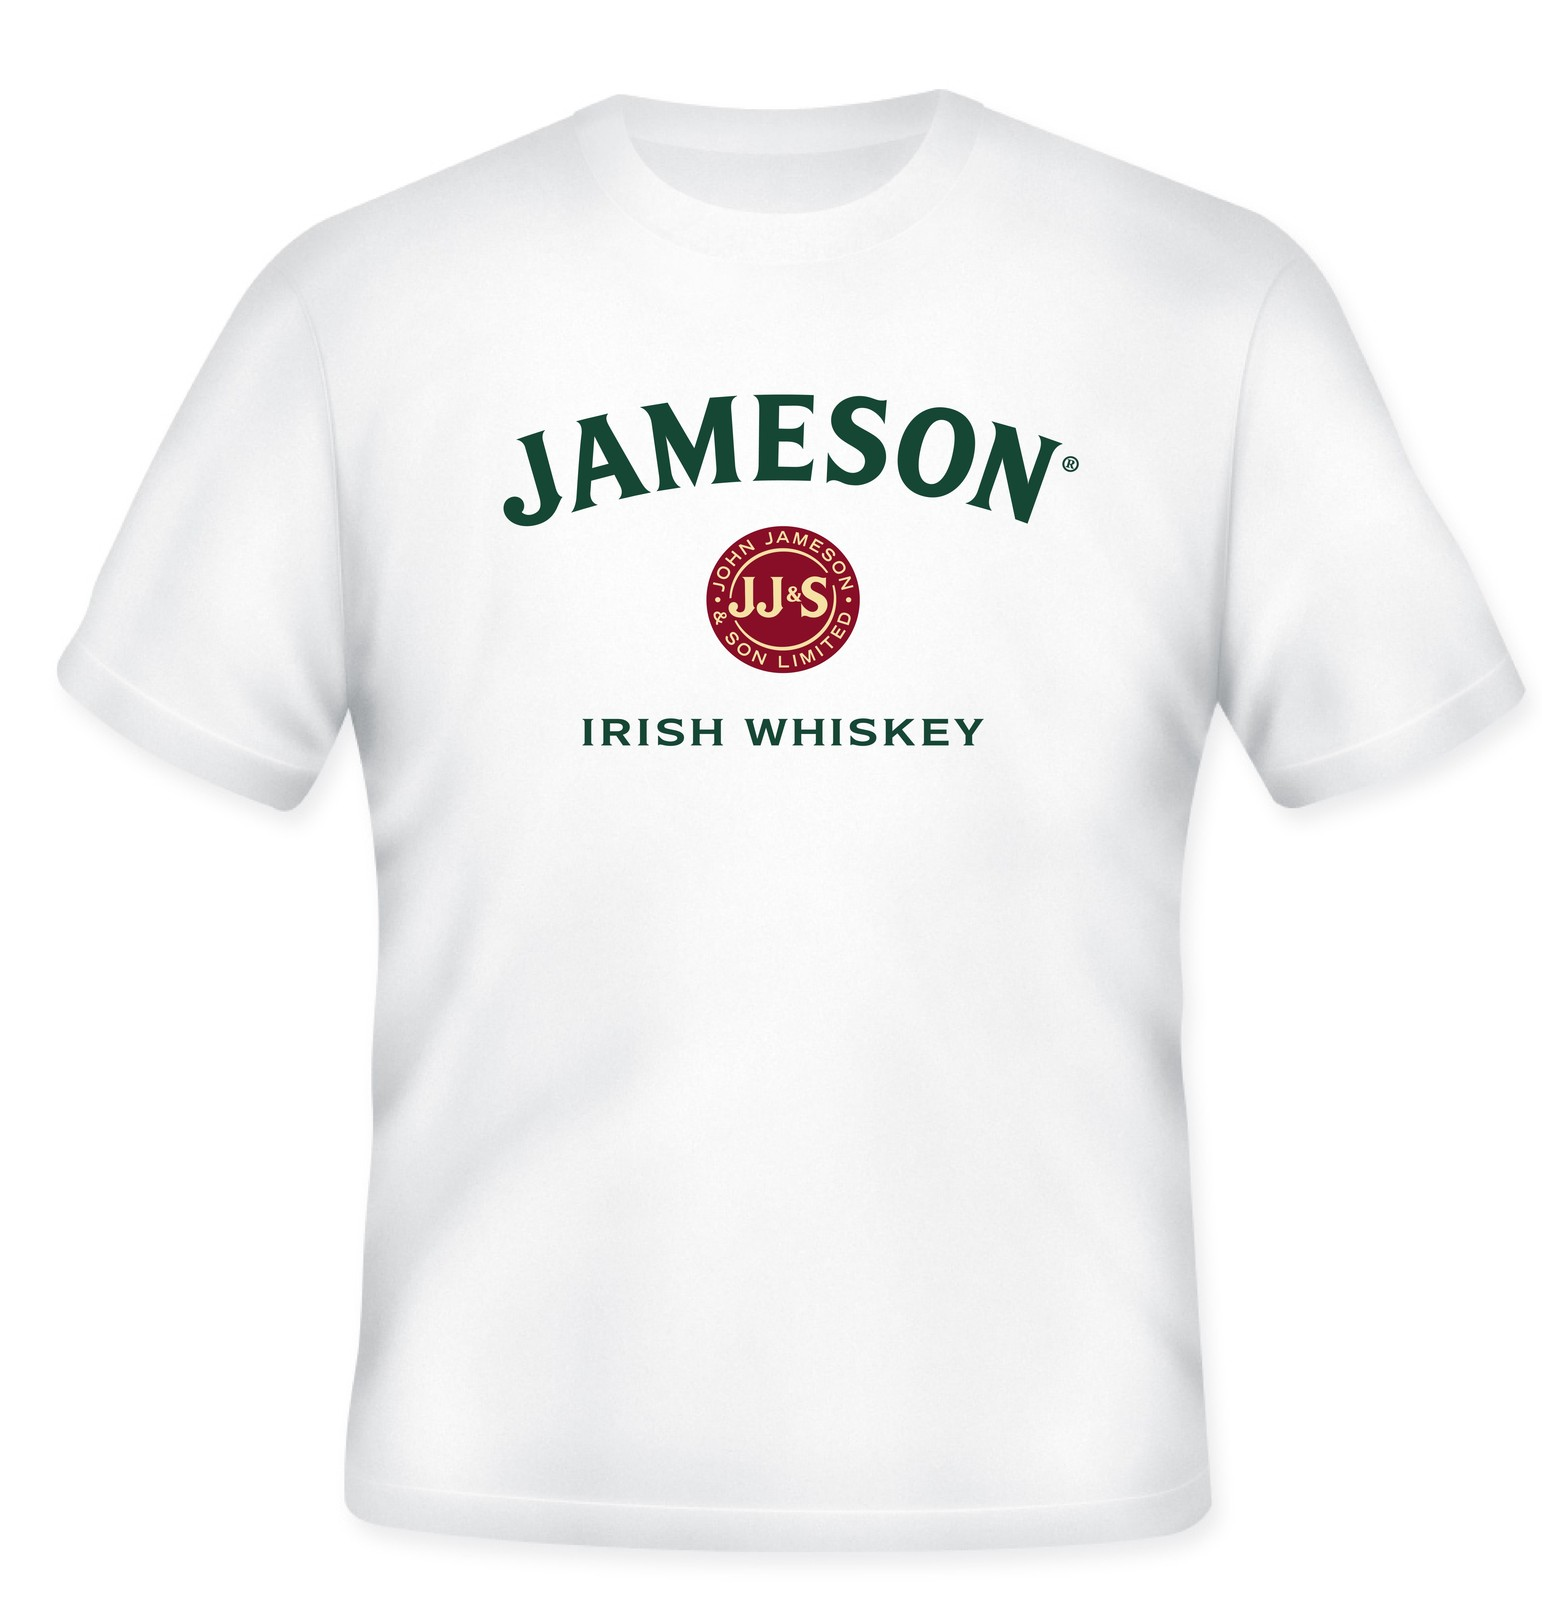 Jameson Irish Whiskey T Shirt S M L XL 2XL 3XL 4XL 5XL